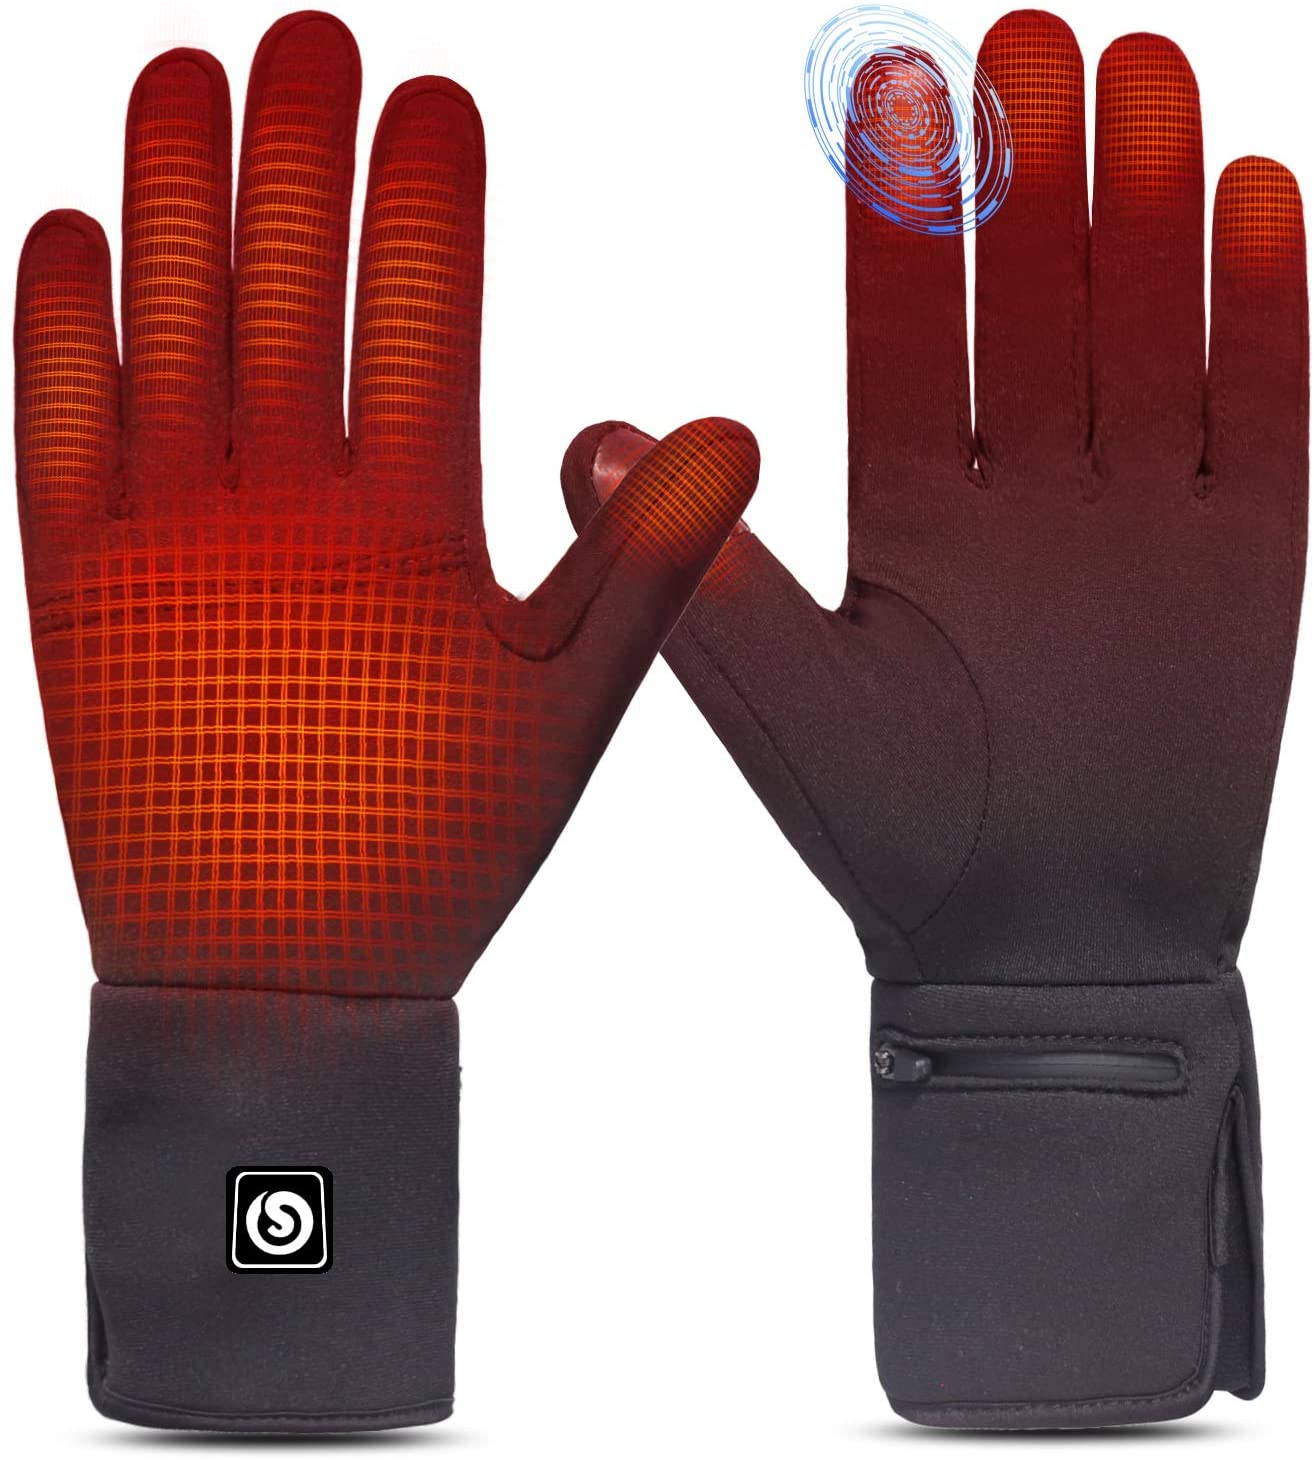 Heated Glove Liners for Winter